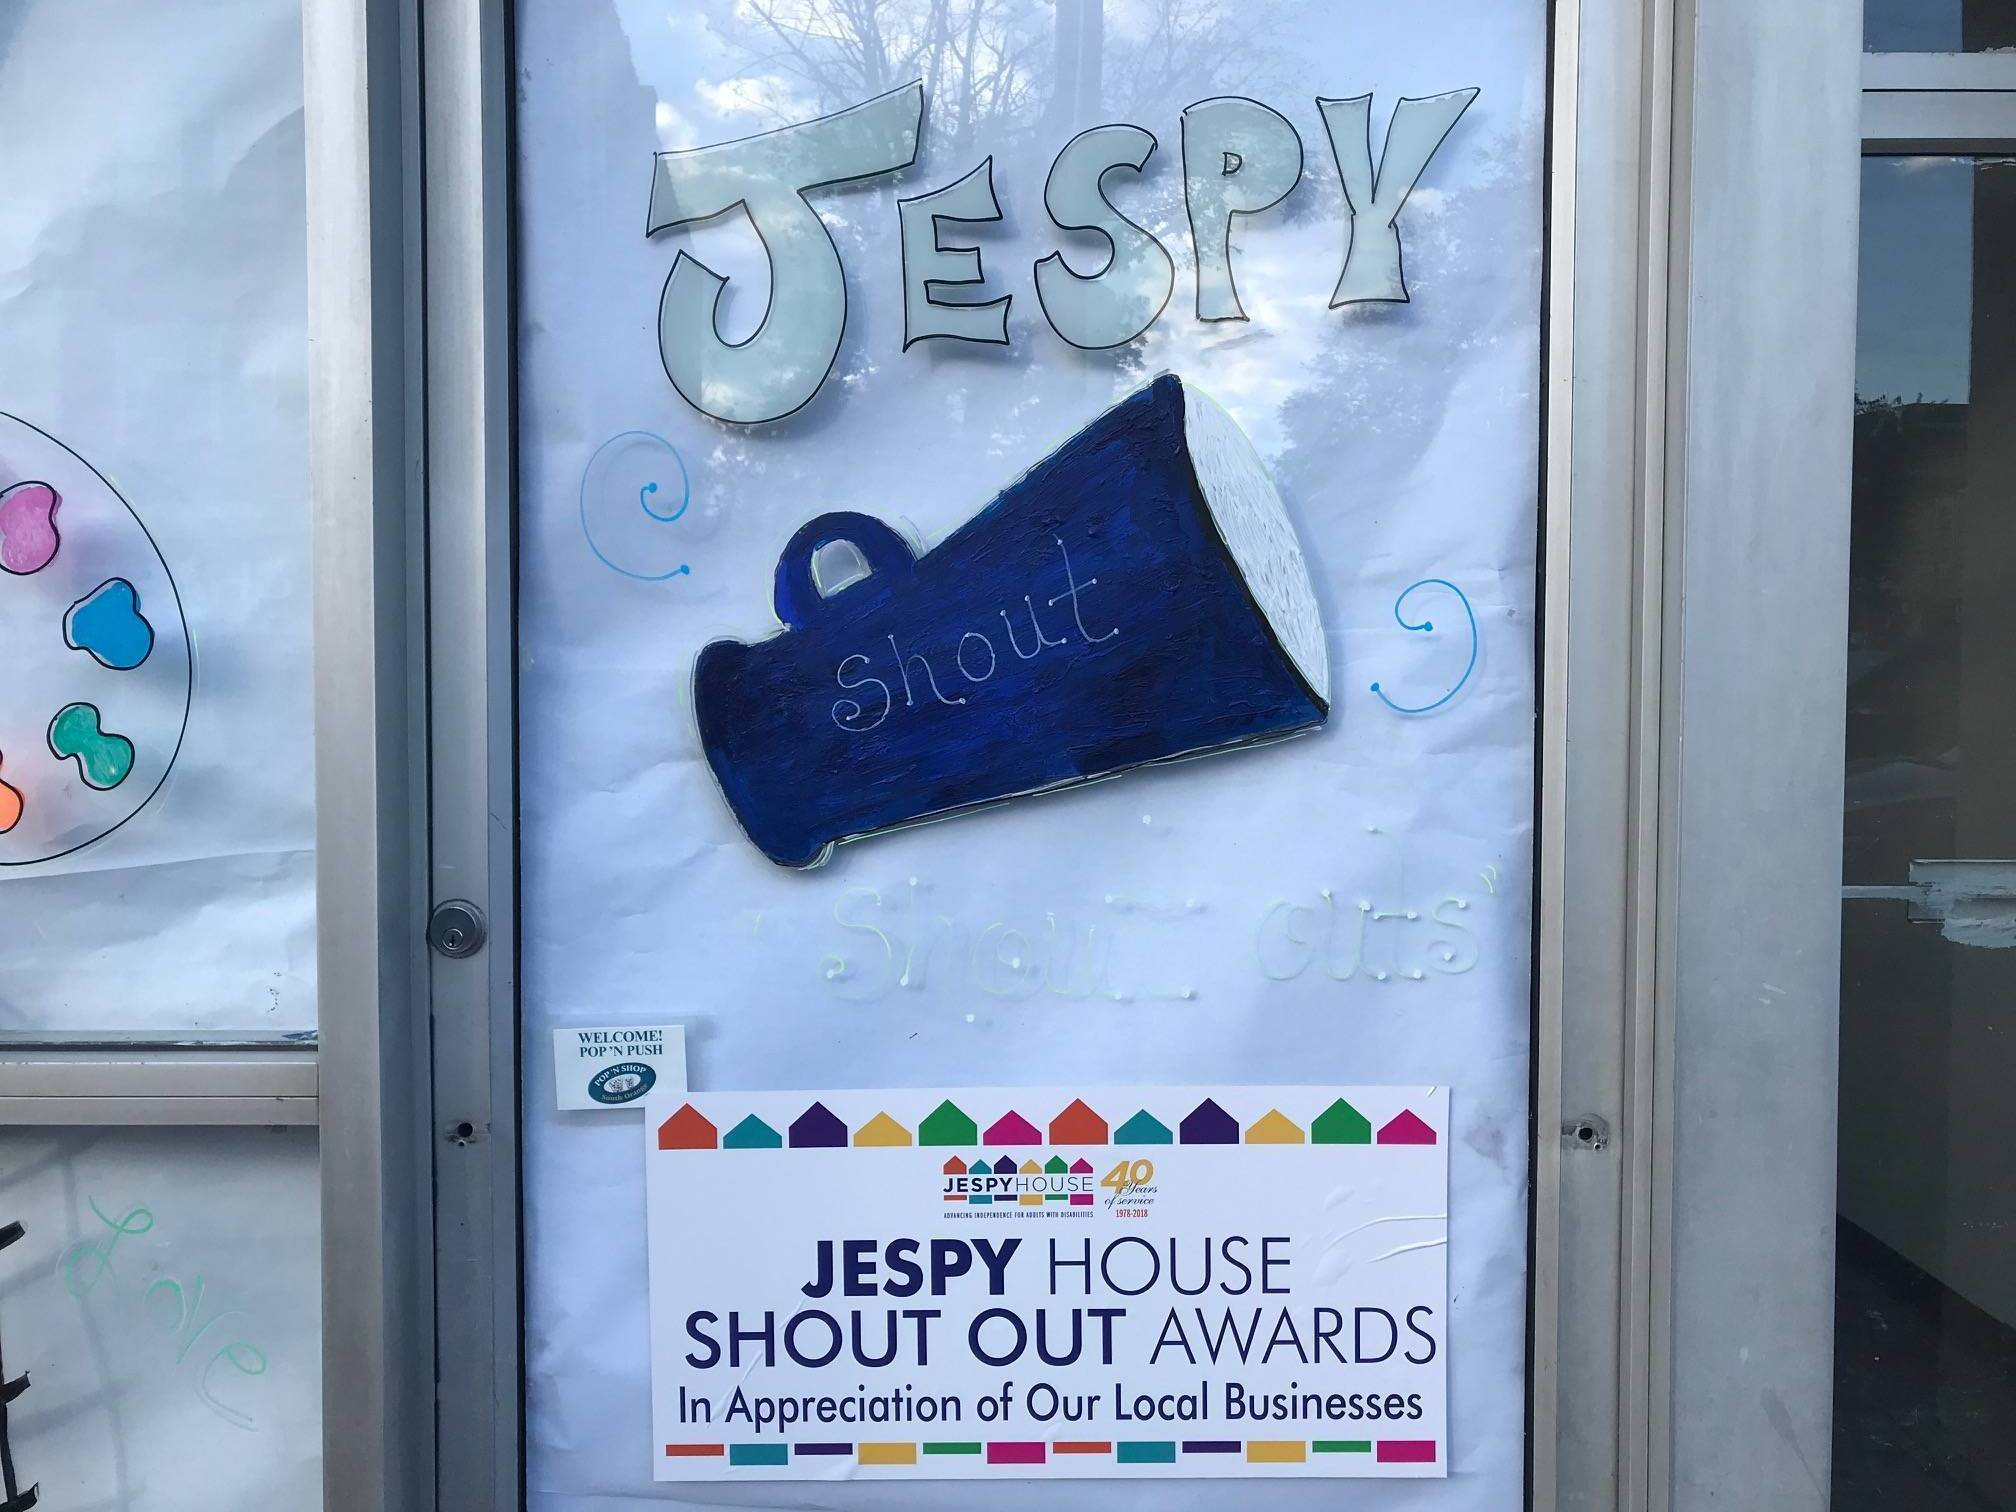 JESPY House SHOUT OUT Awards Recognize Local South Orange Businesses